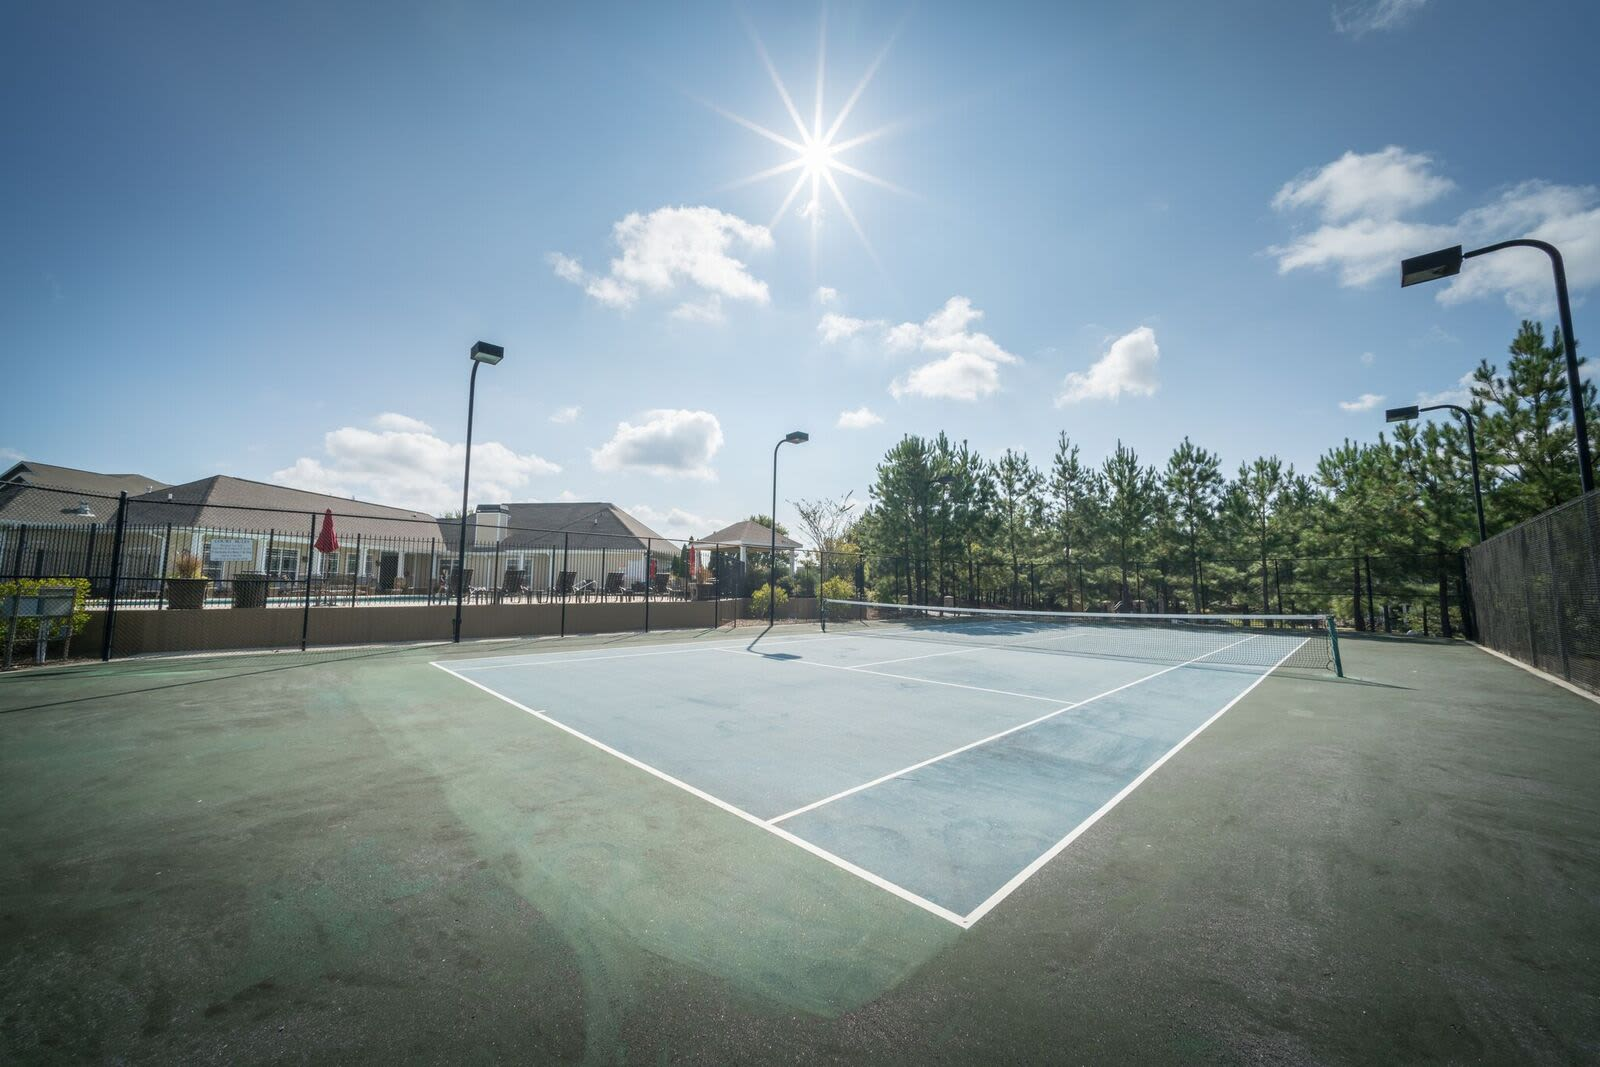 Haddon Place offers a unique tennis court in McDonough, Georgia